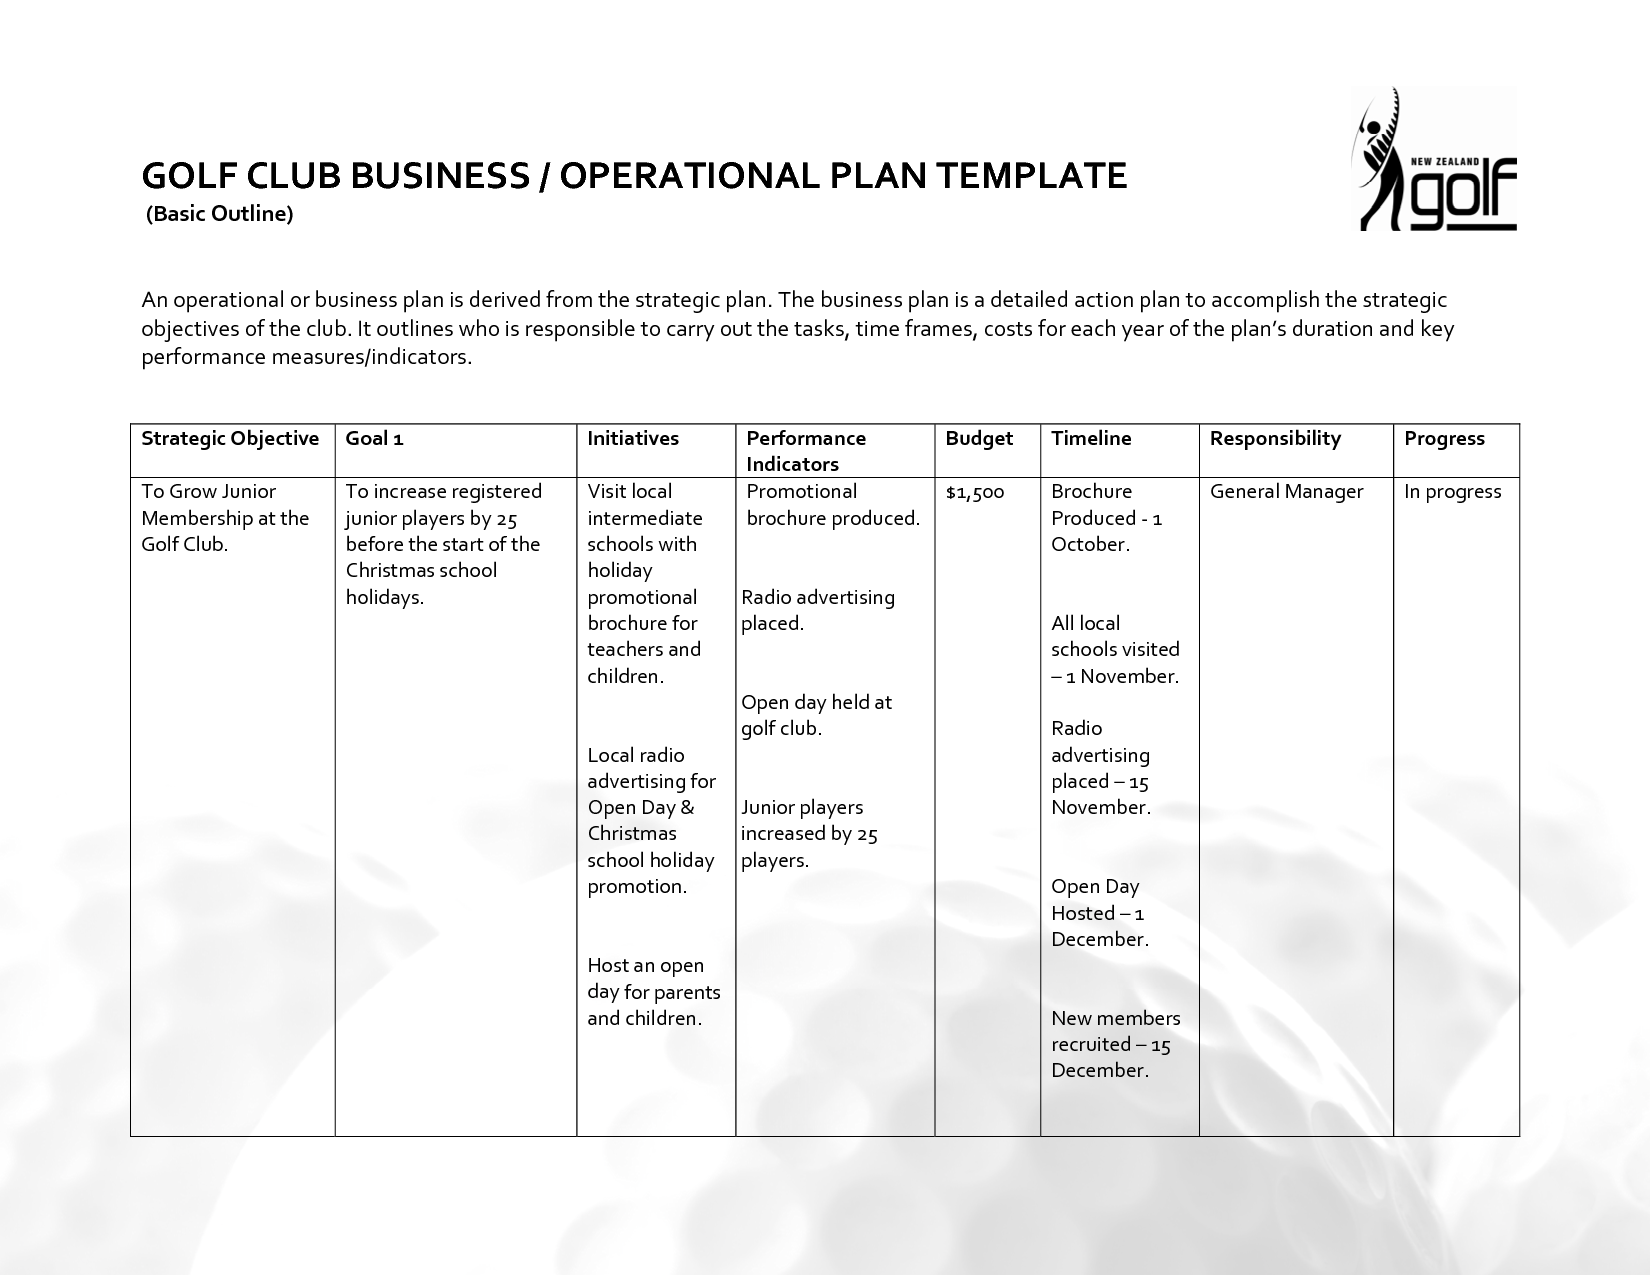 Basic Business Plan Outline Sample  Golf Club Business